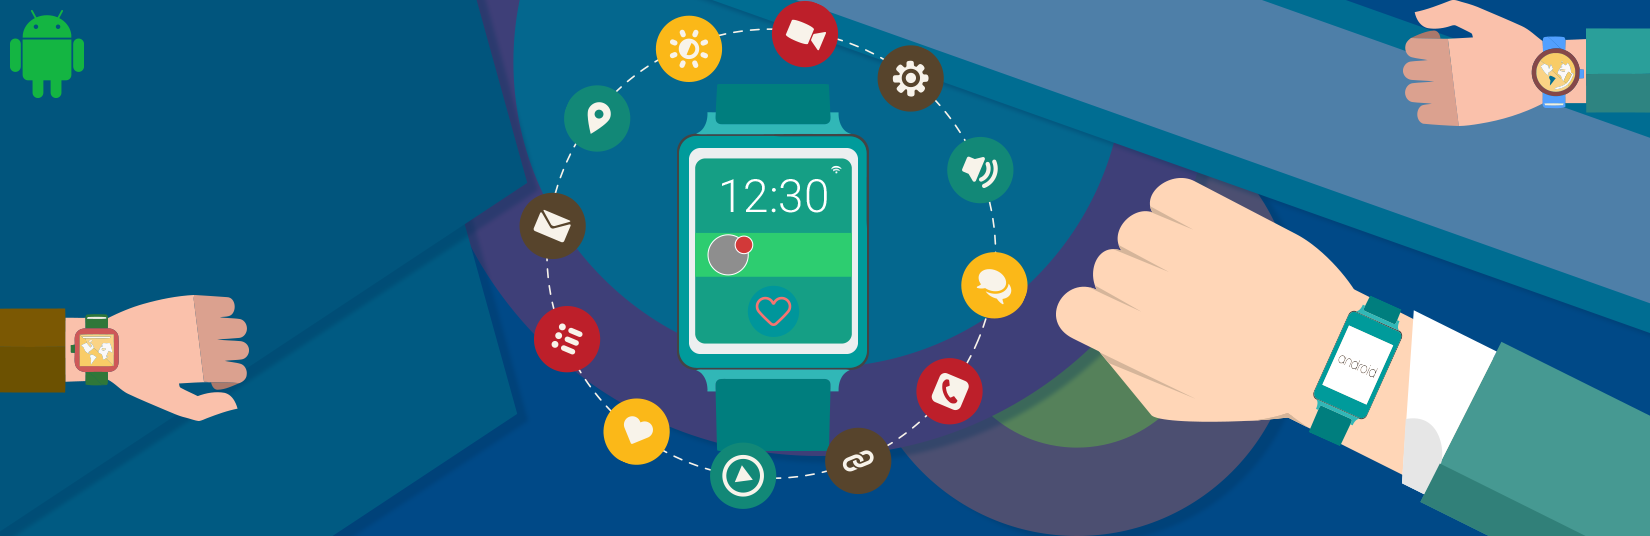 Android wearables app development